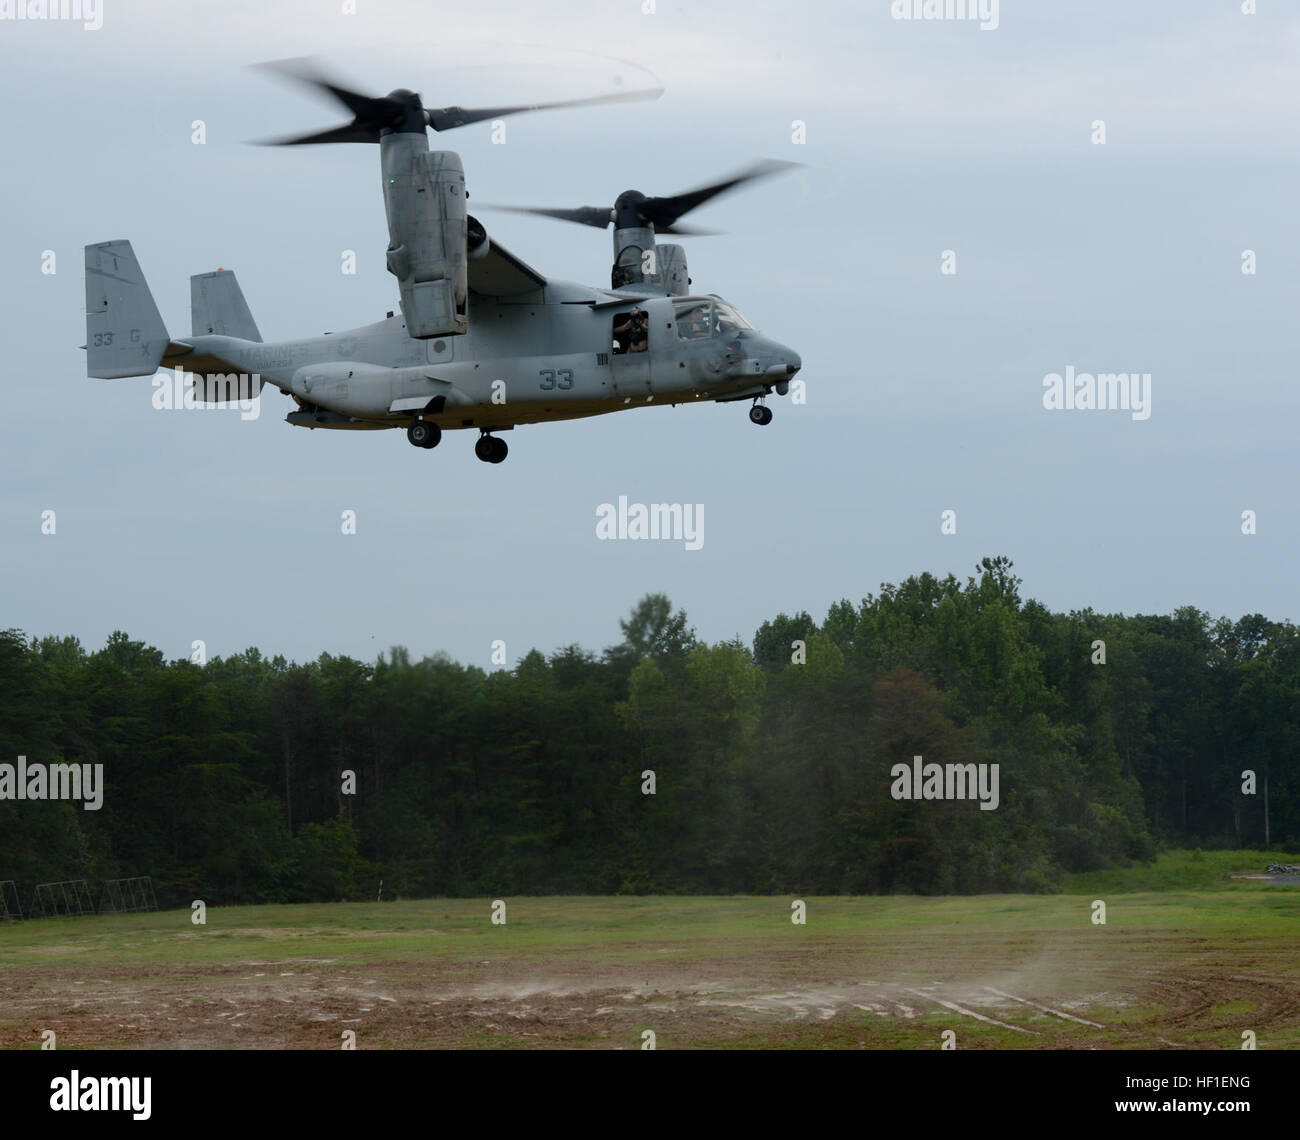 An MV-22 Osprey from Marine Medium Tiltrotor Training Squadron 204 lands at LZ 7 on Aug. 23, 2013. VMMT-204 was Stock Photo